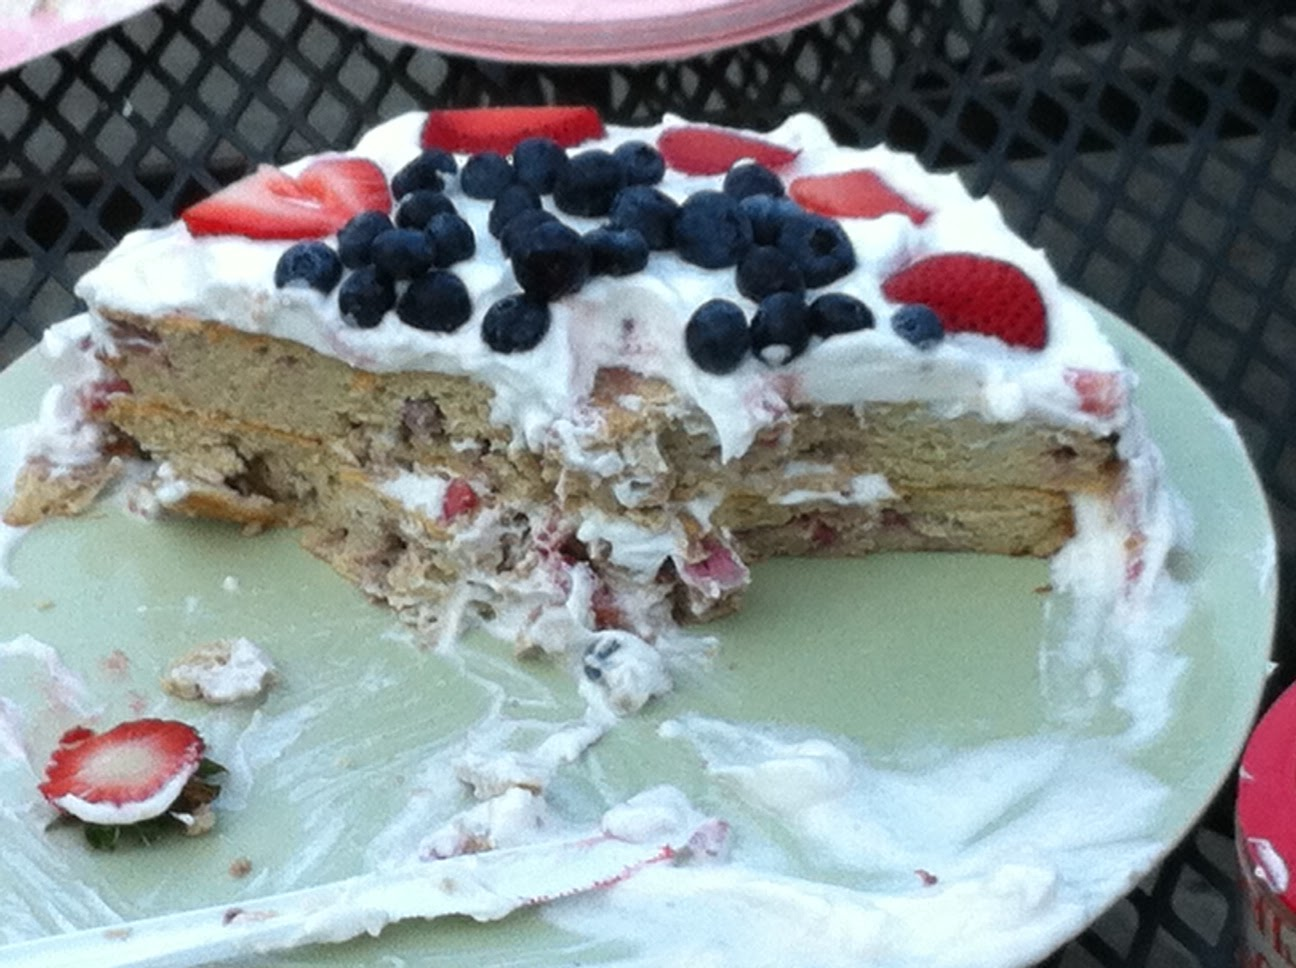 Images Of Eaten Birthday Cake : Grain-Free Groupie: The Gluten-Free Birthday Party Series ...